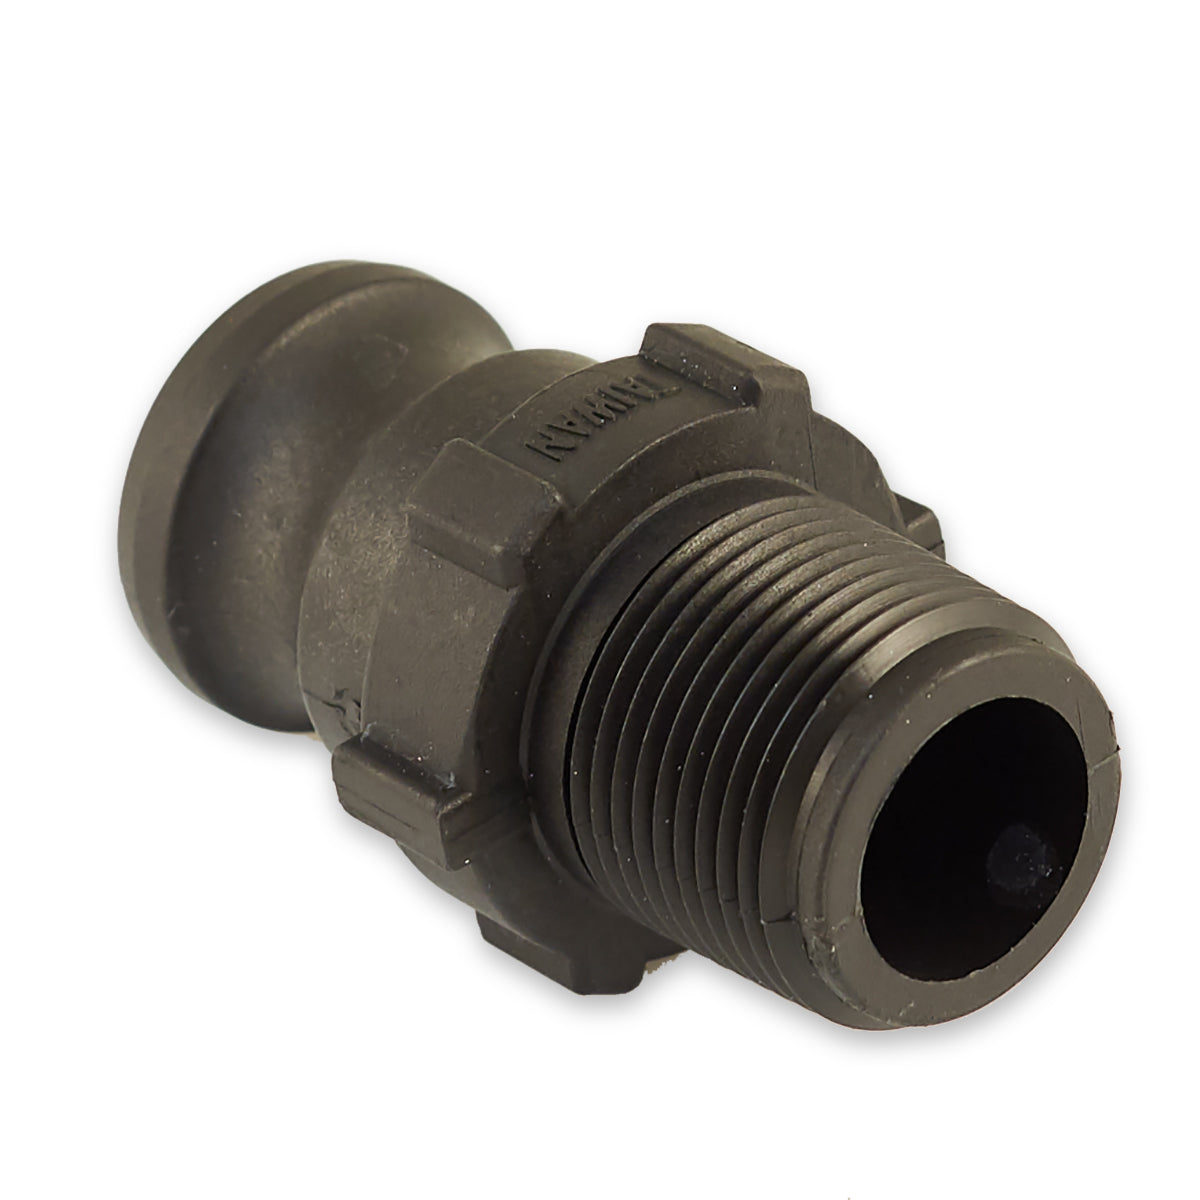 M-122 Male Adapter 1""